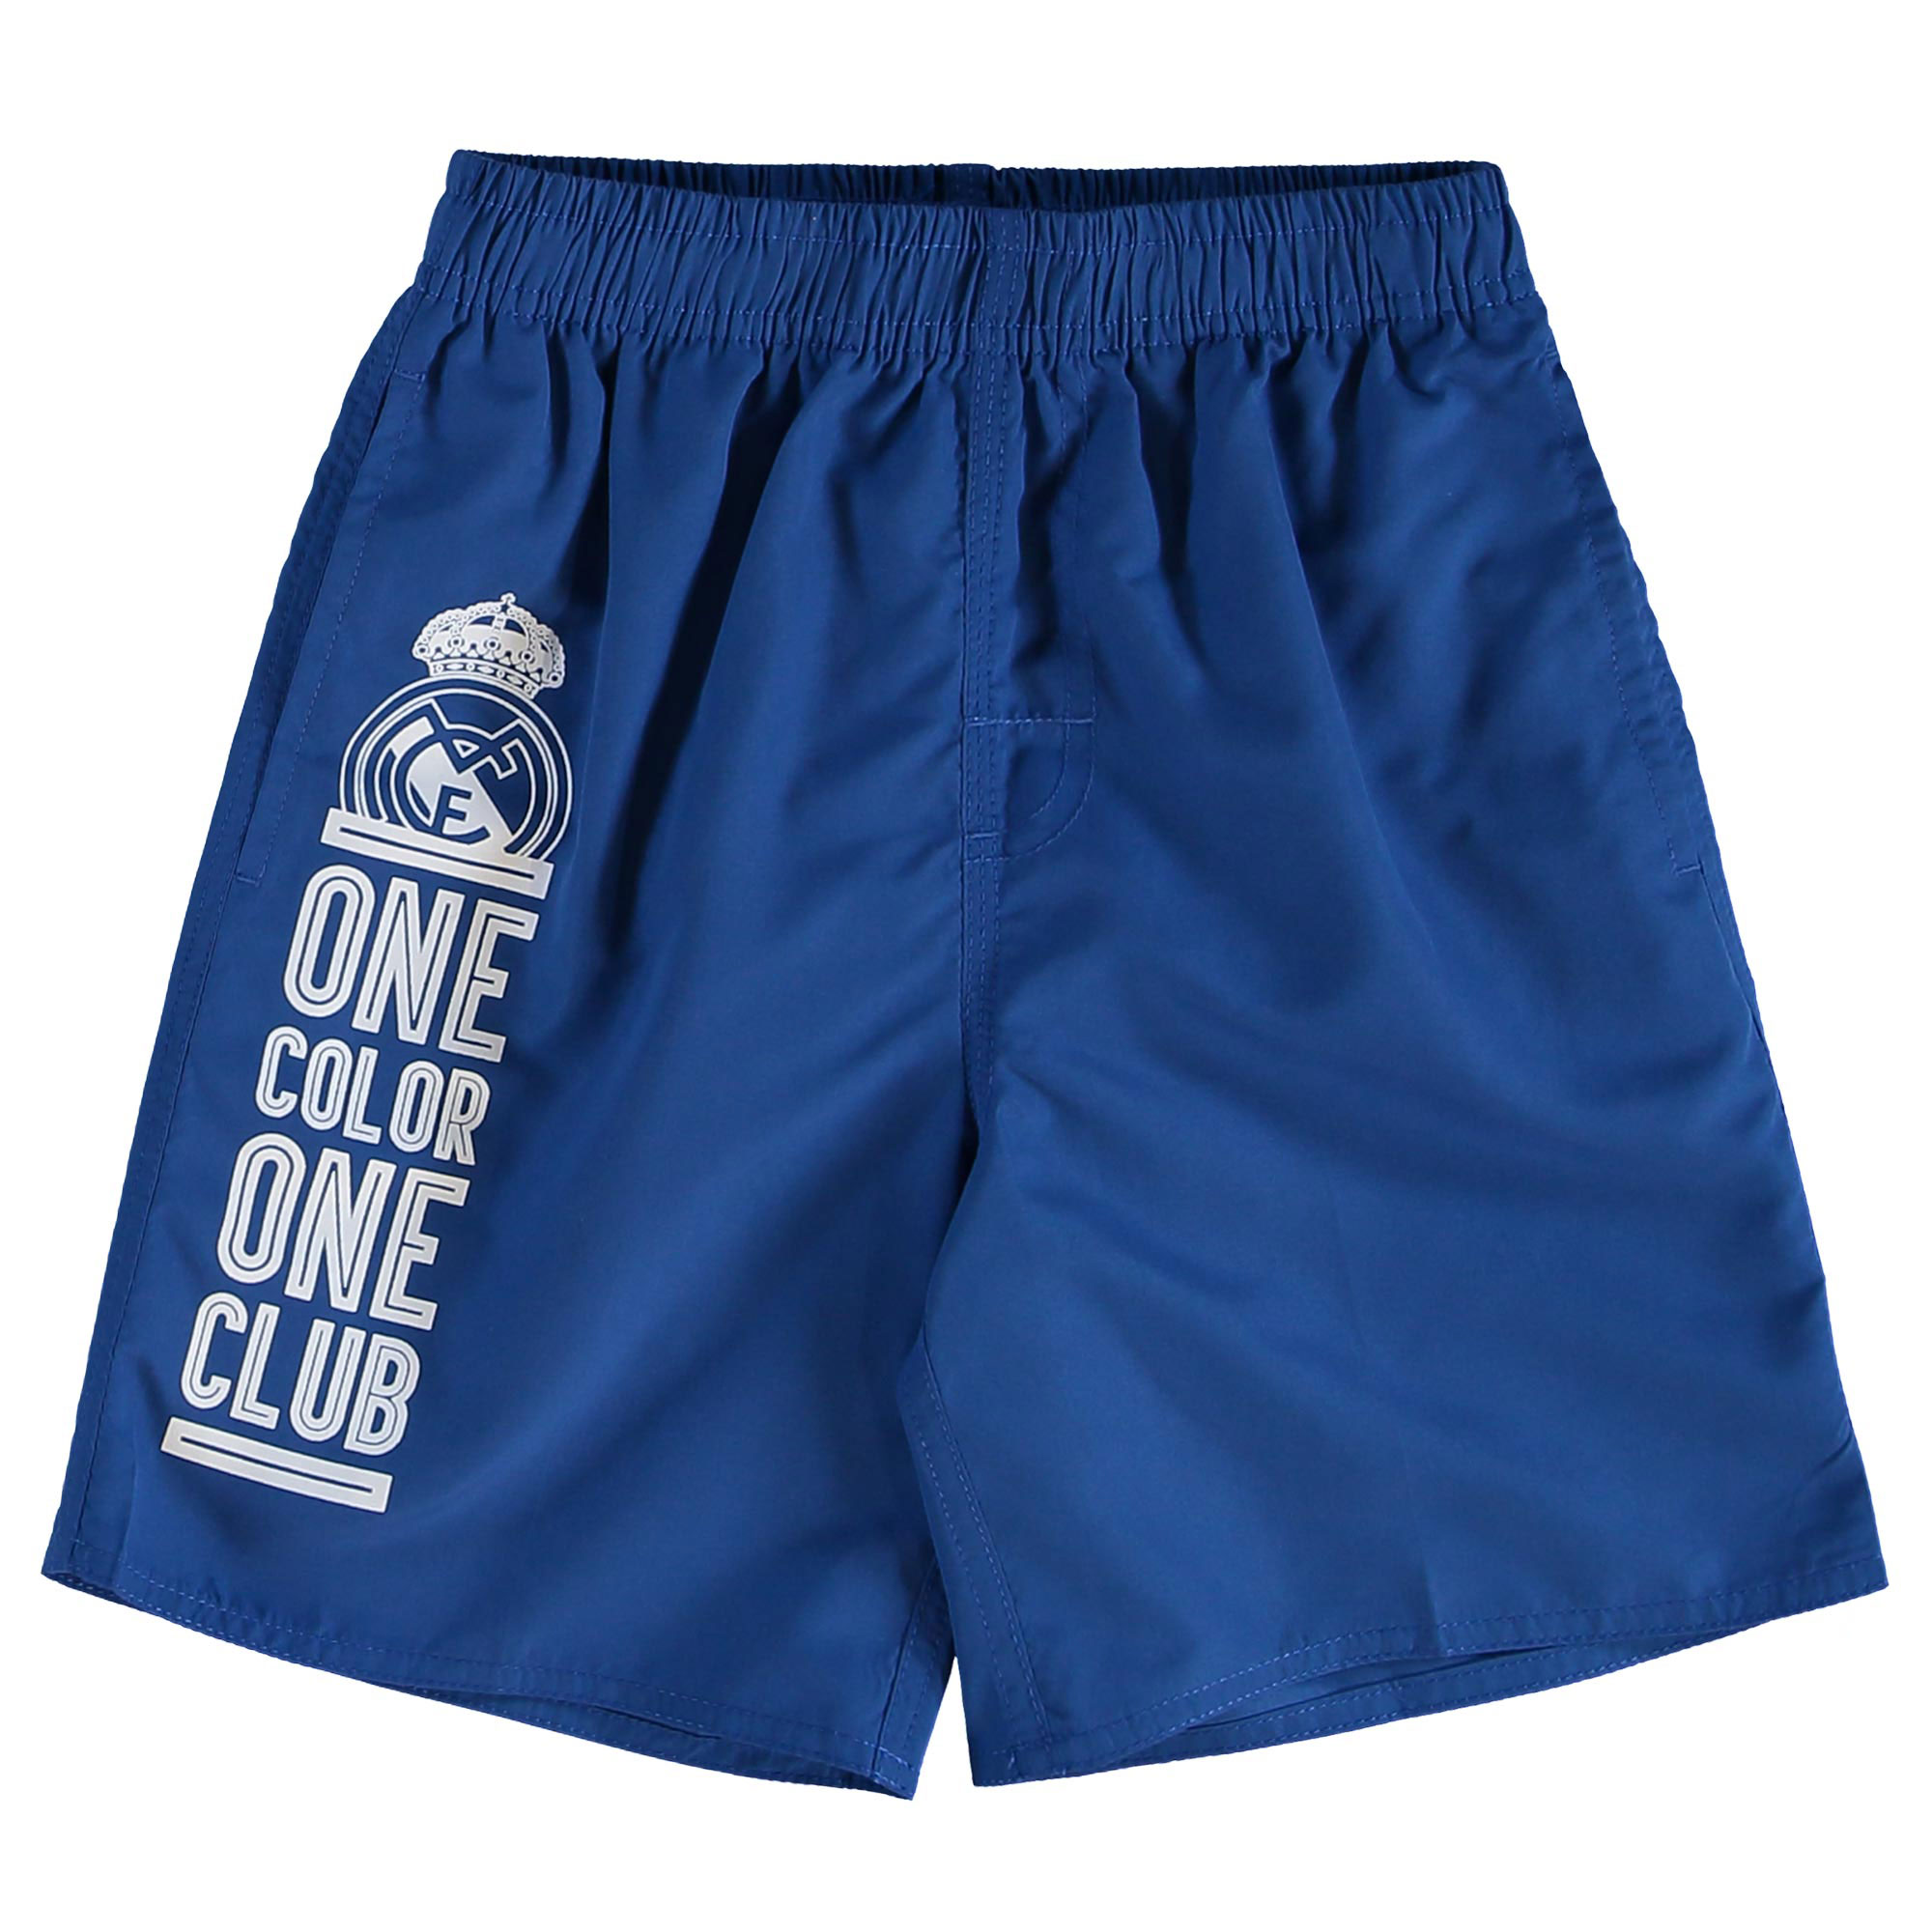 Short de bain Real Madrid - Bleu - Enfant